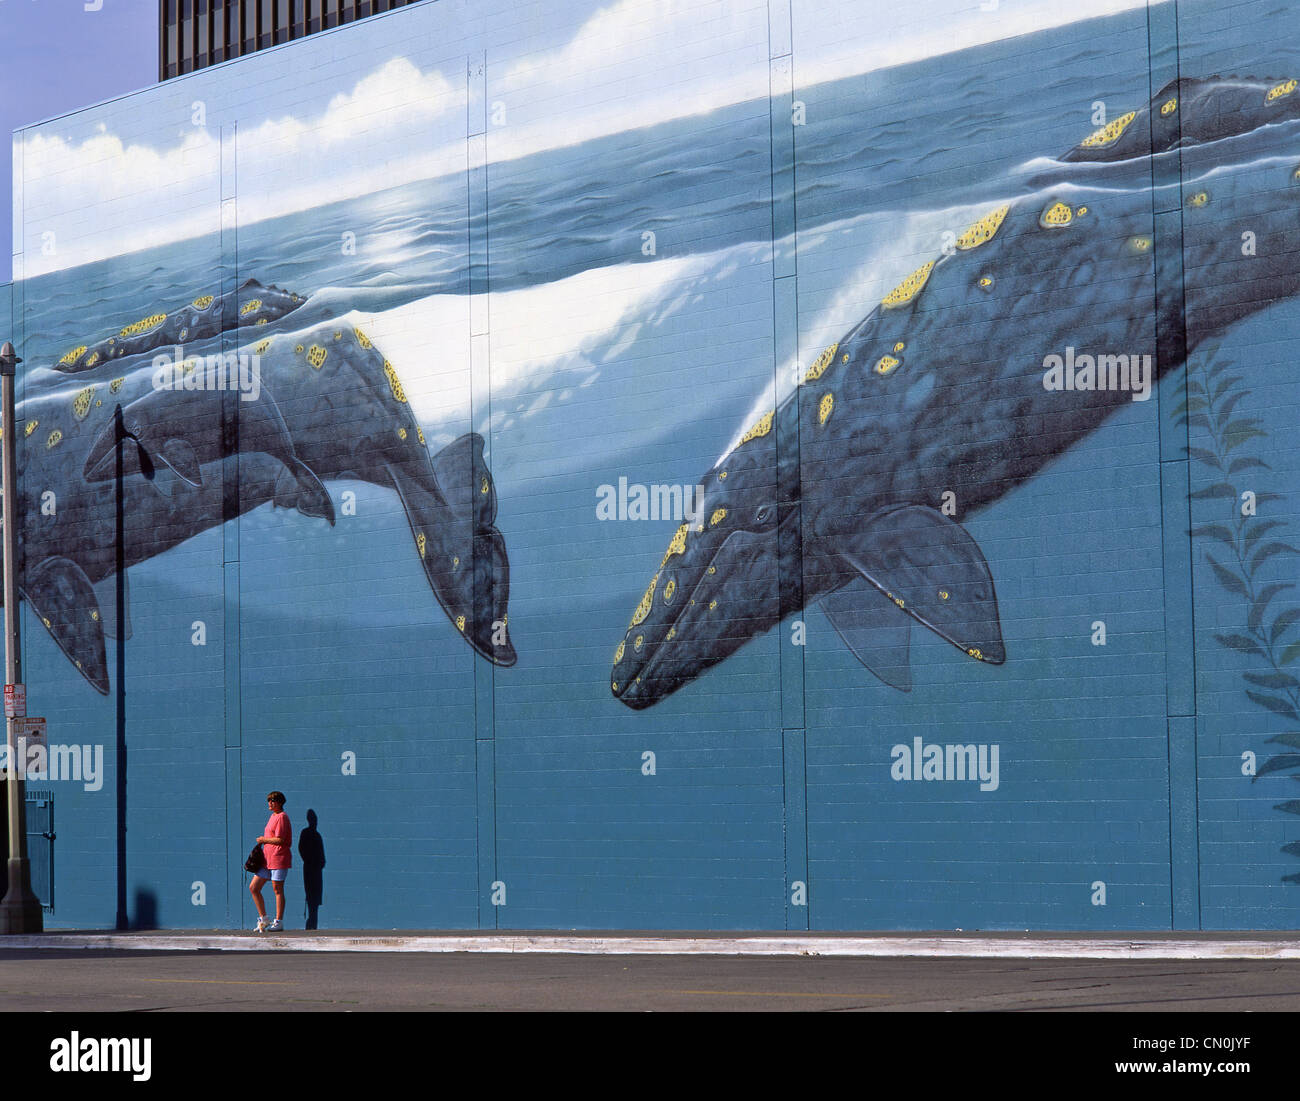 Whale wall mural, Hollywood, Los Angeles, California, United States of America - Stock Image